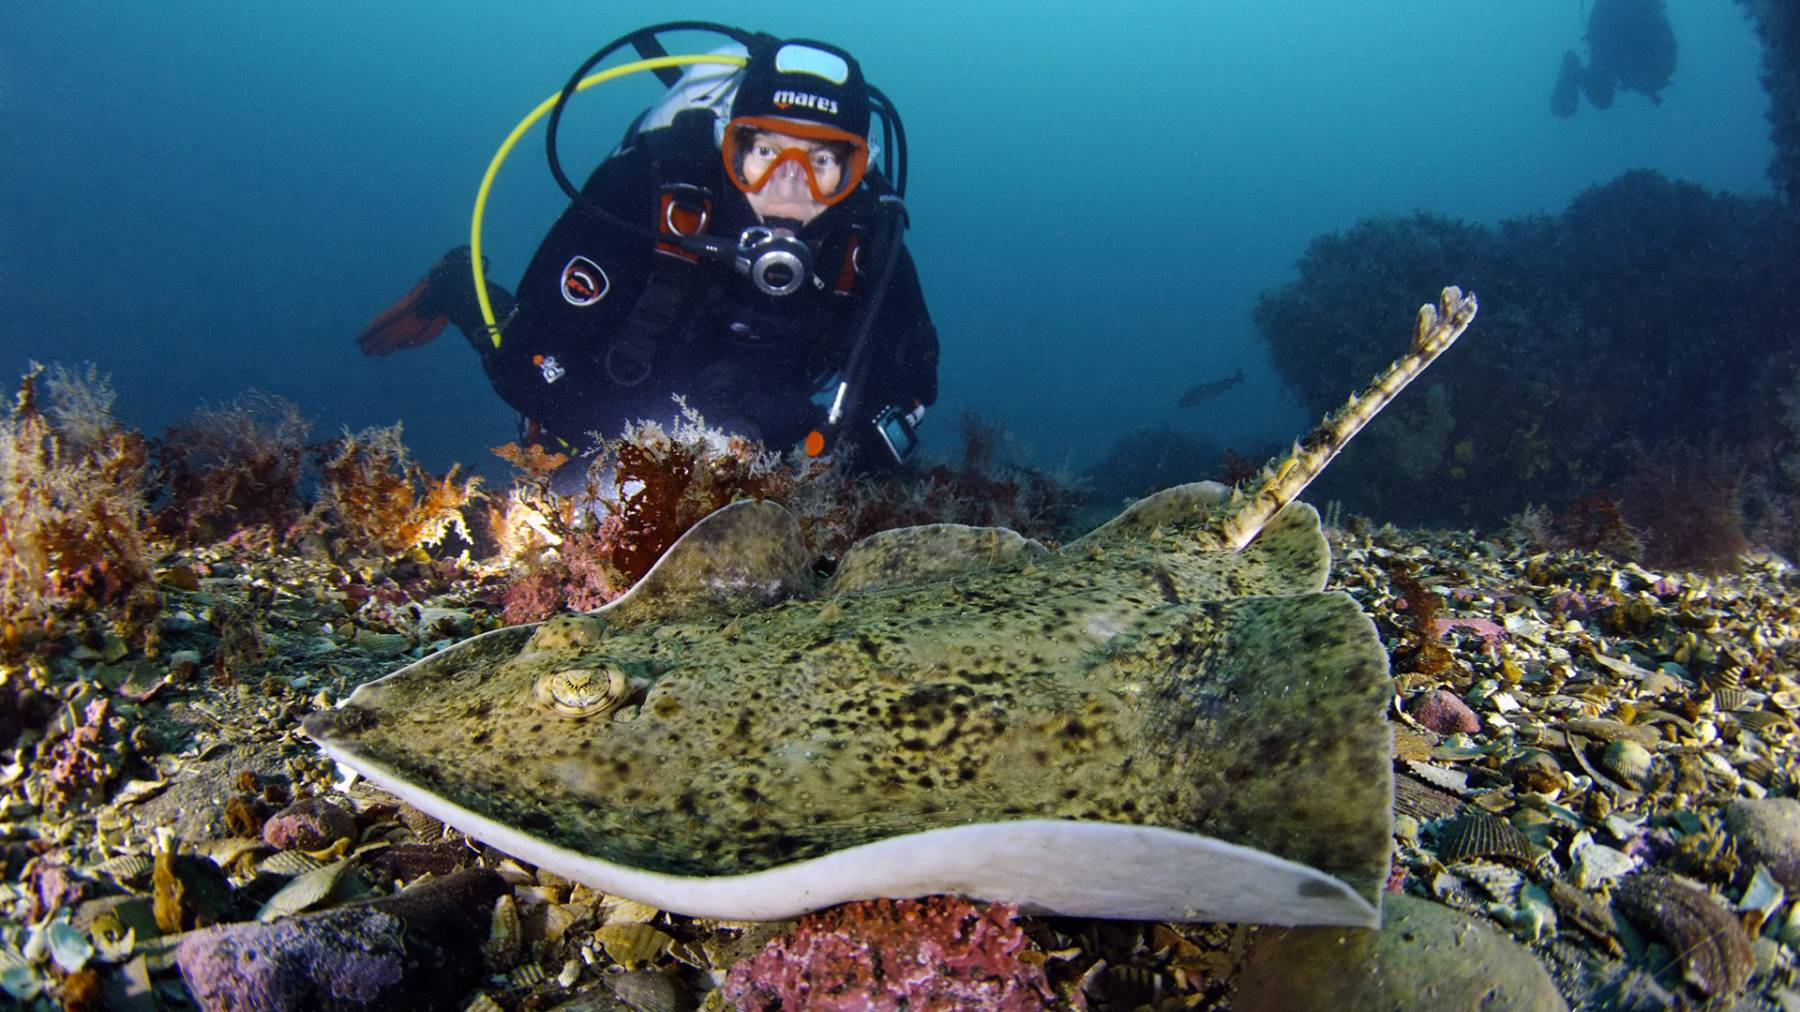 A Diver next to a Starry Ray found in Strýtan, Iceland